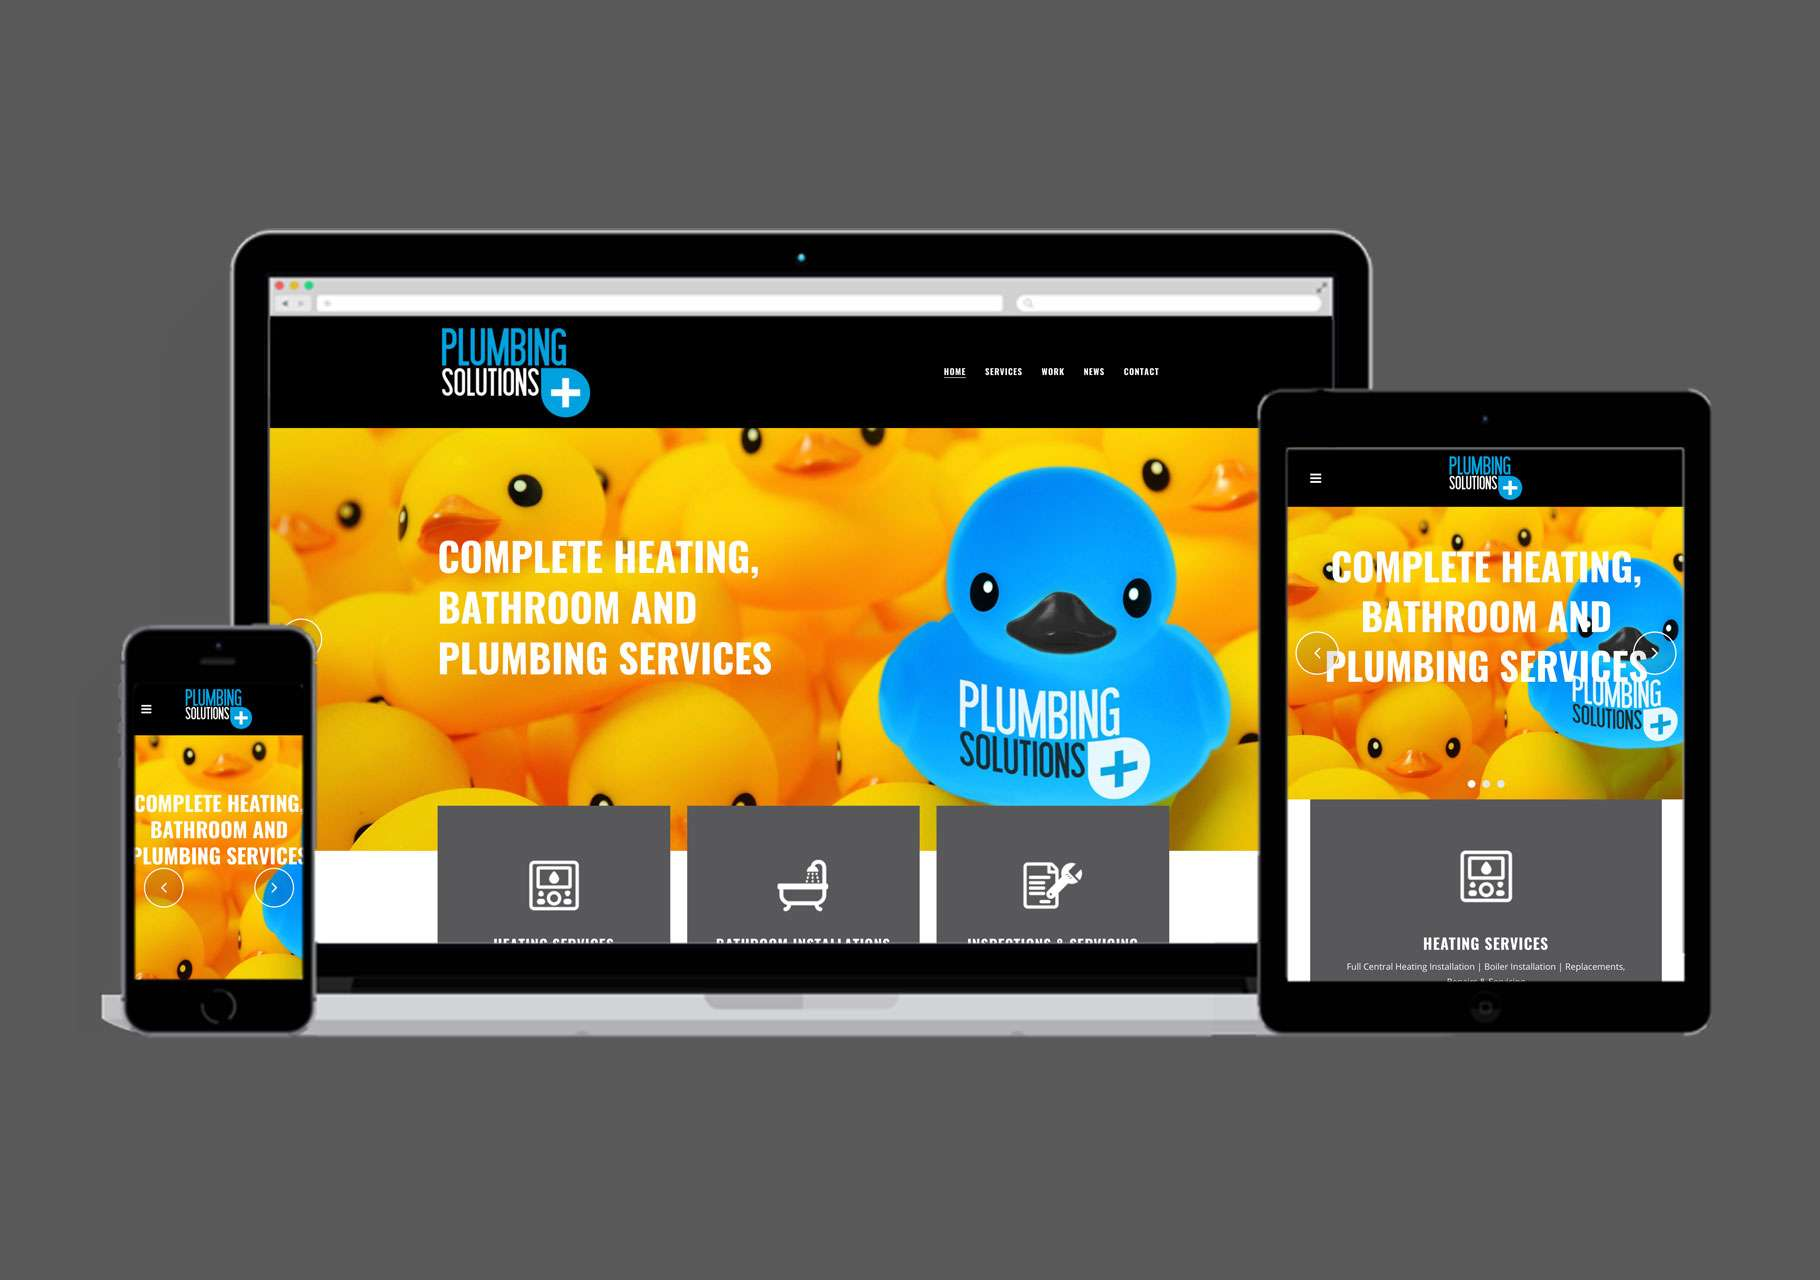 Plumbing-Solutions Plus Website Design